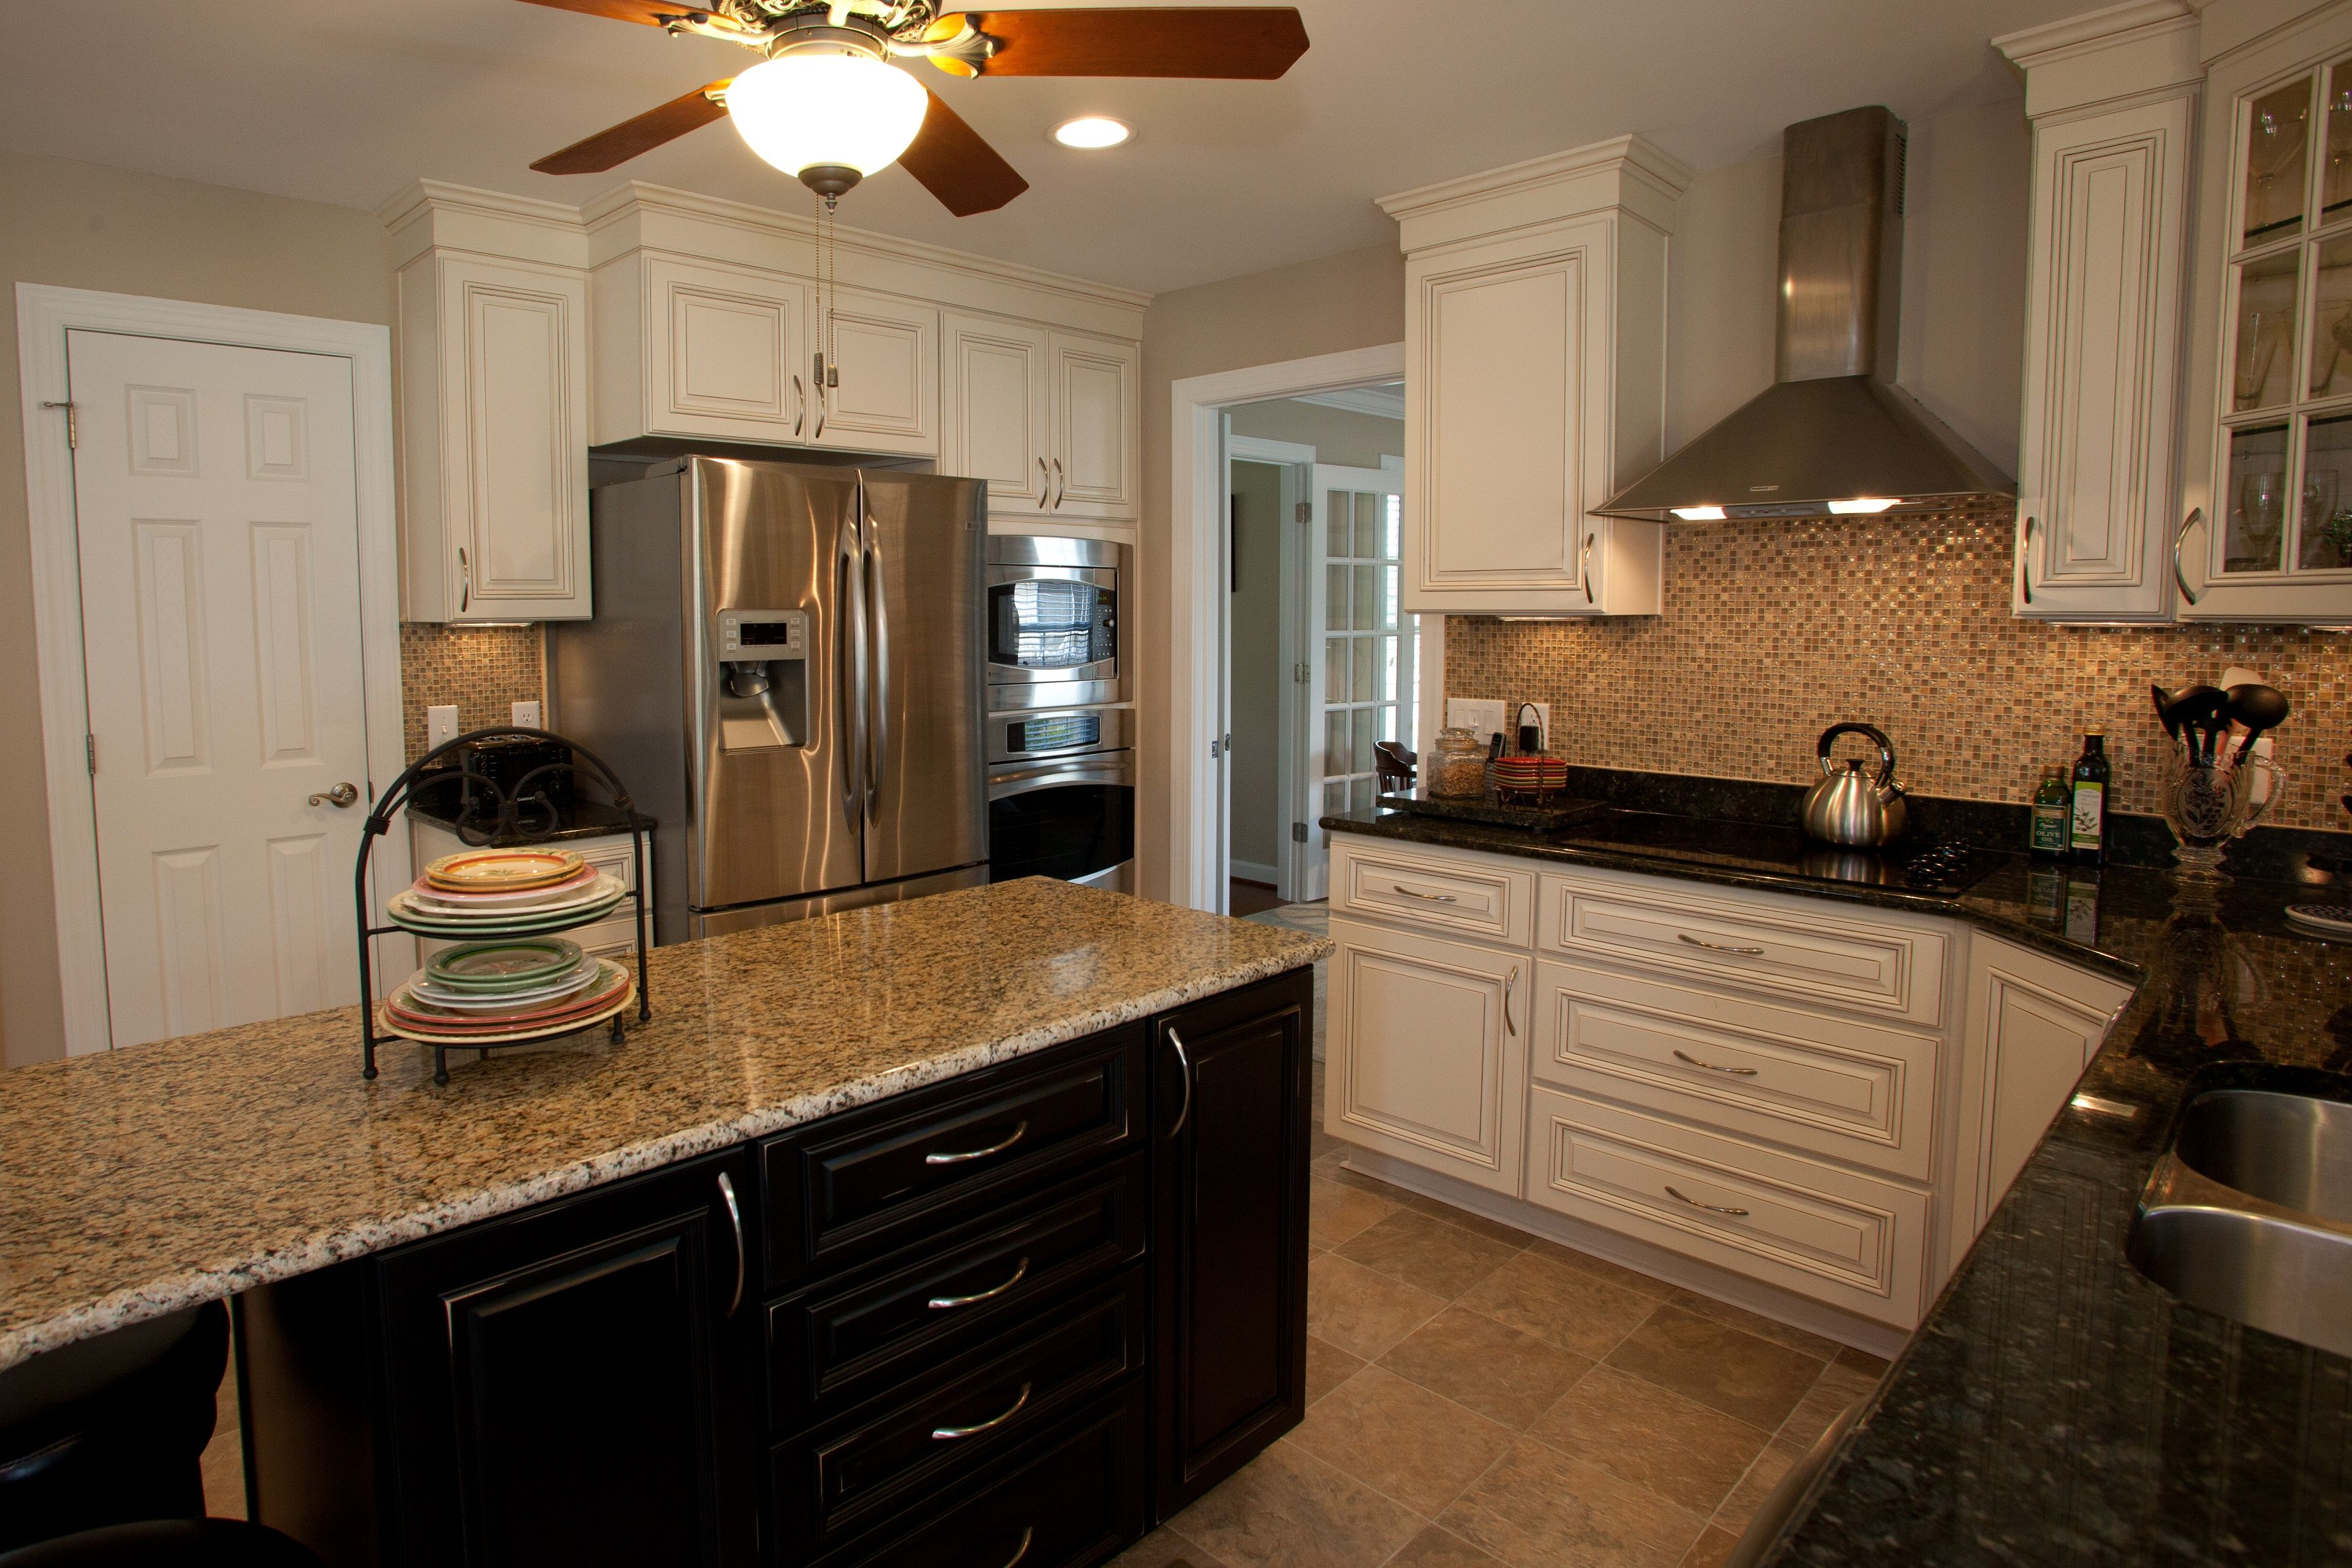 New Kitchen in Newport News Virginia has Custom Cabinets ...